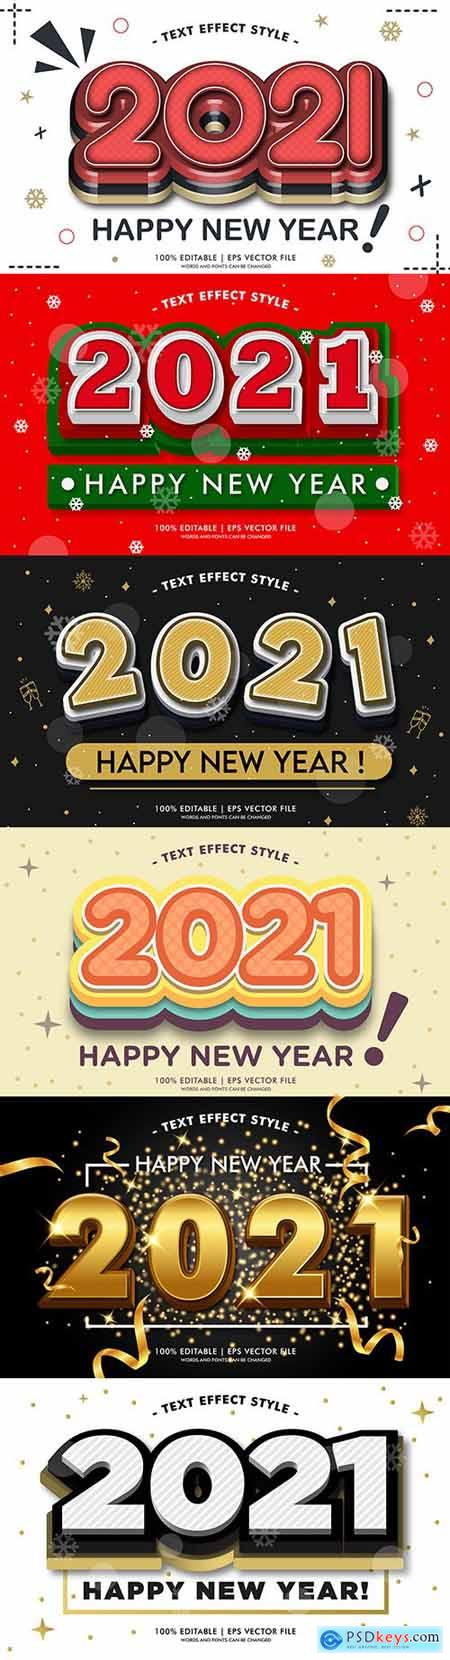 Happy New Year 2021 beautiful design text effects